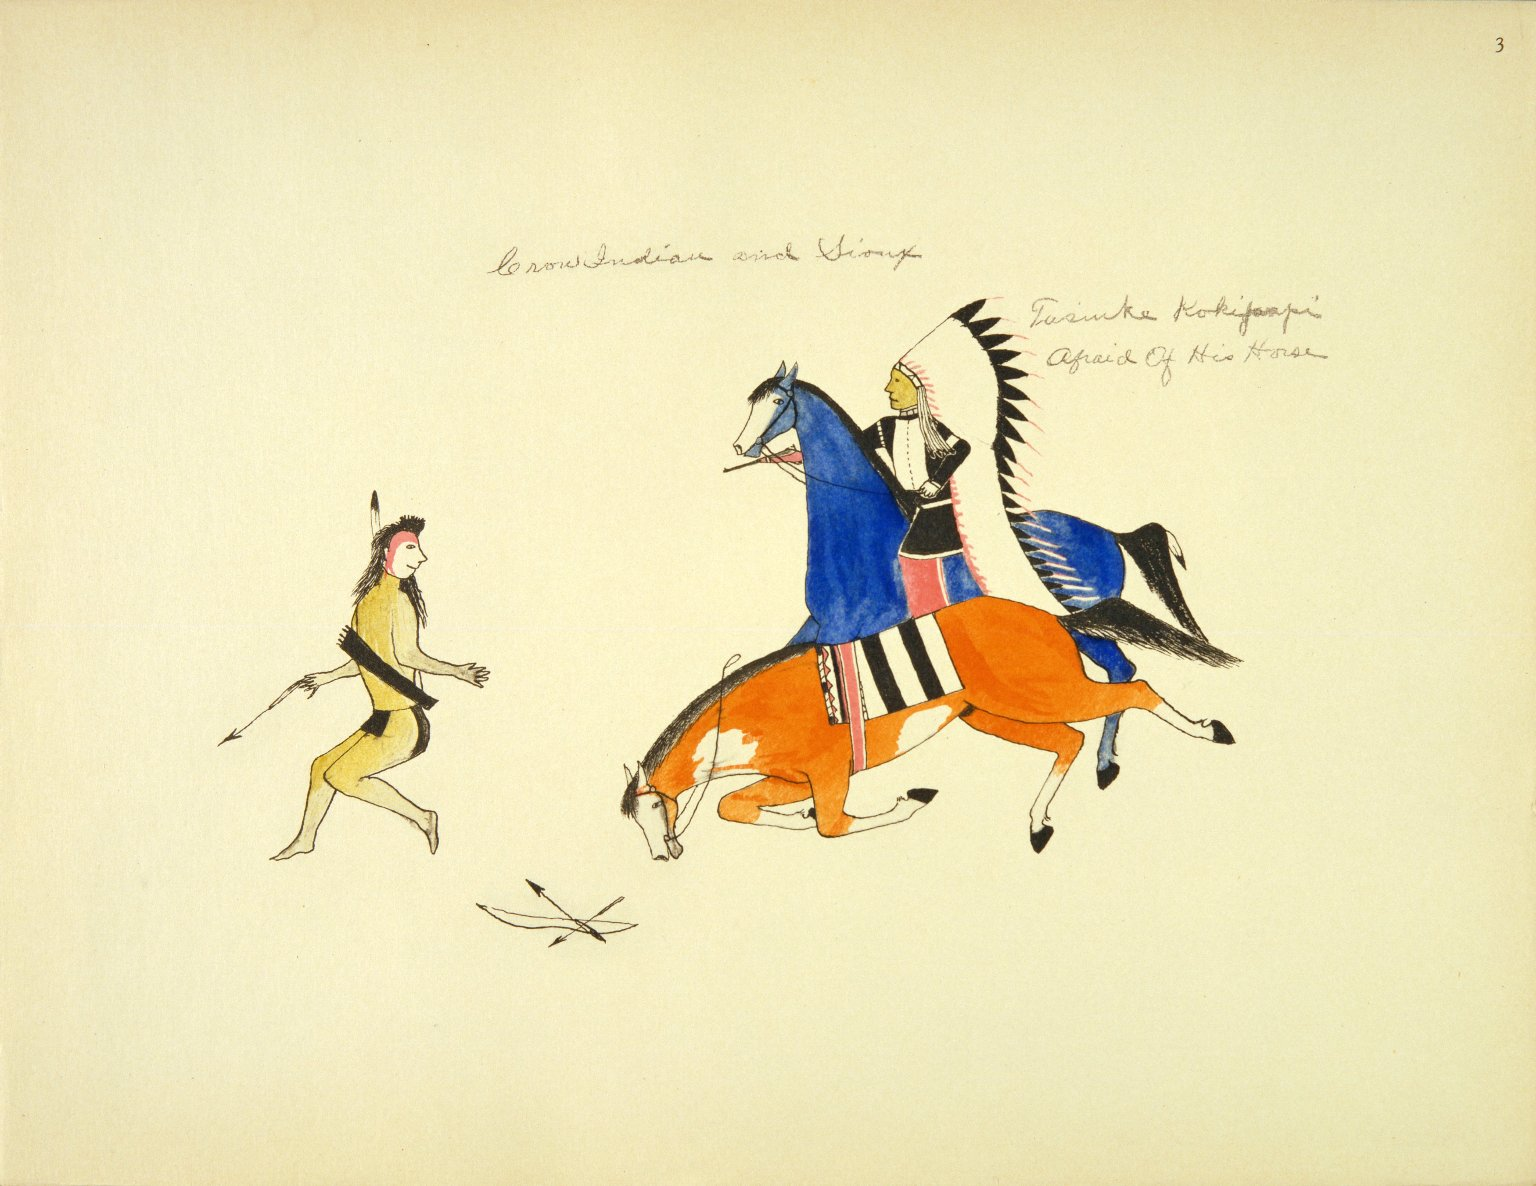 The Celebrated Sioux Chieftain Afraid-of-his-Horses (Tasinke Kokipapoi) Attacking a Crow Indian